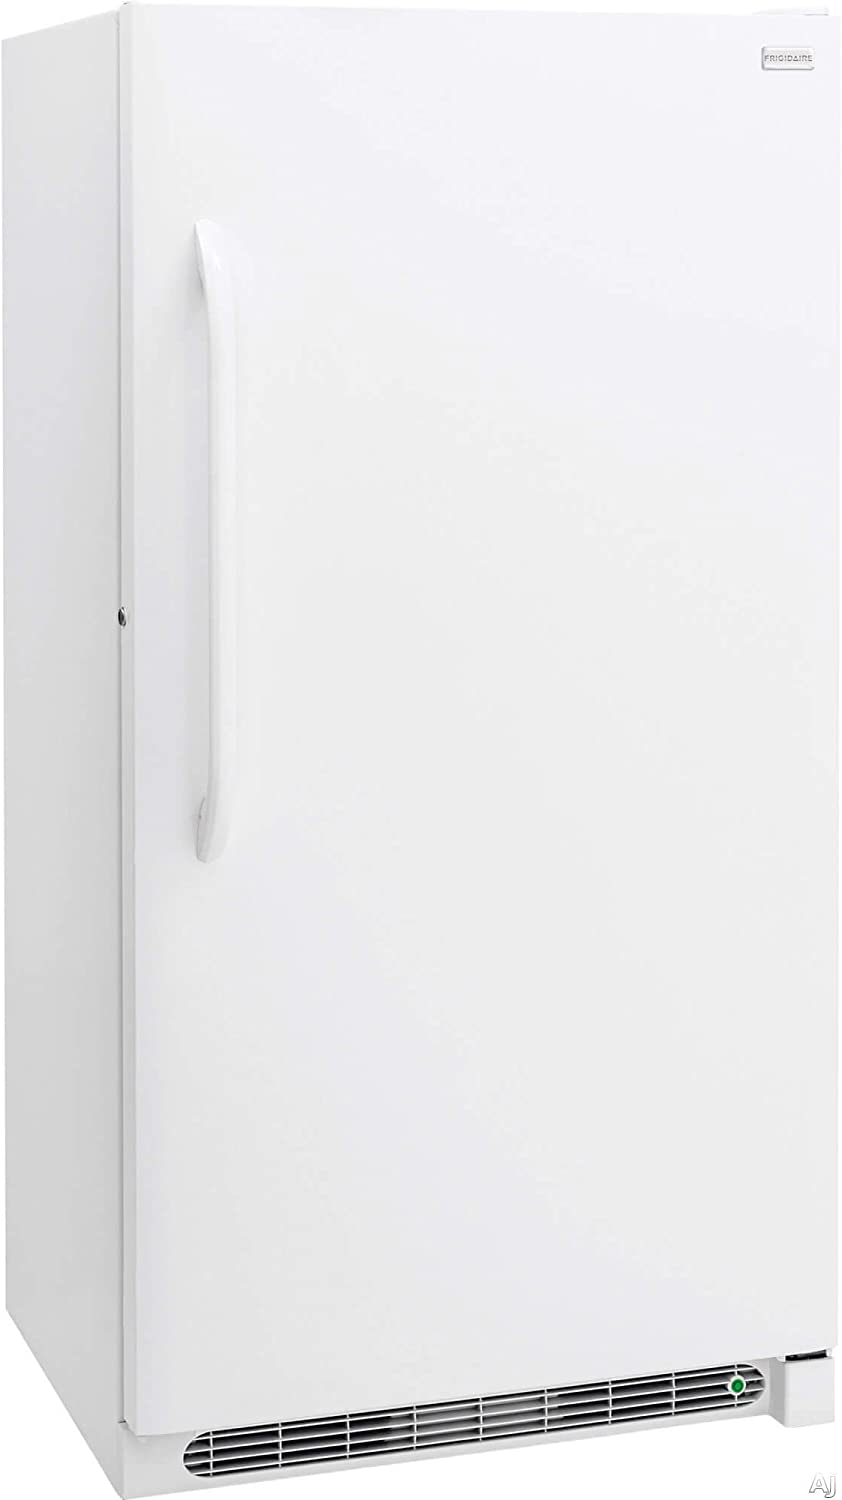 Frigidaire FFFH20F2QW 20.2 Cu Ft Upright Freezer